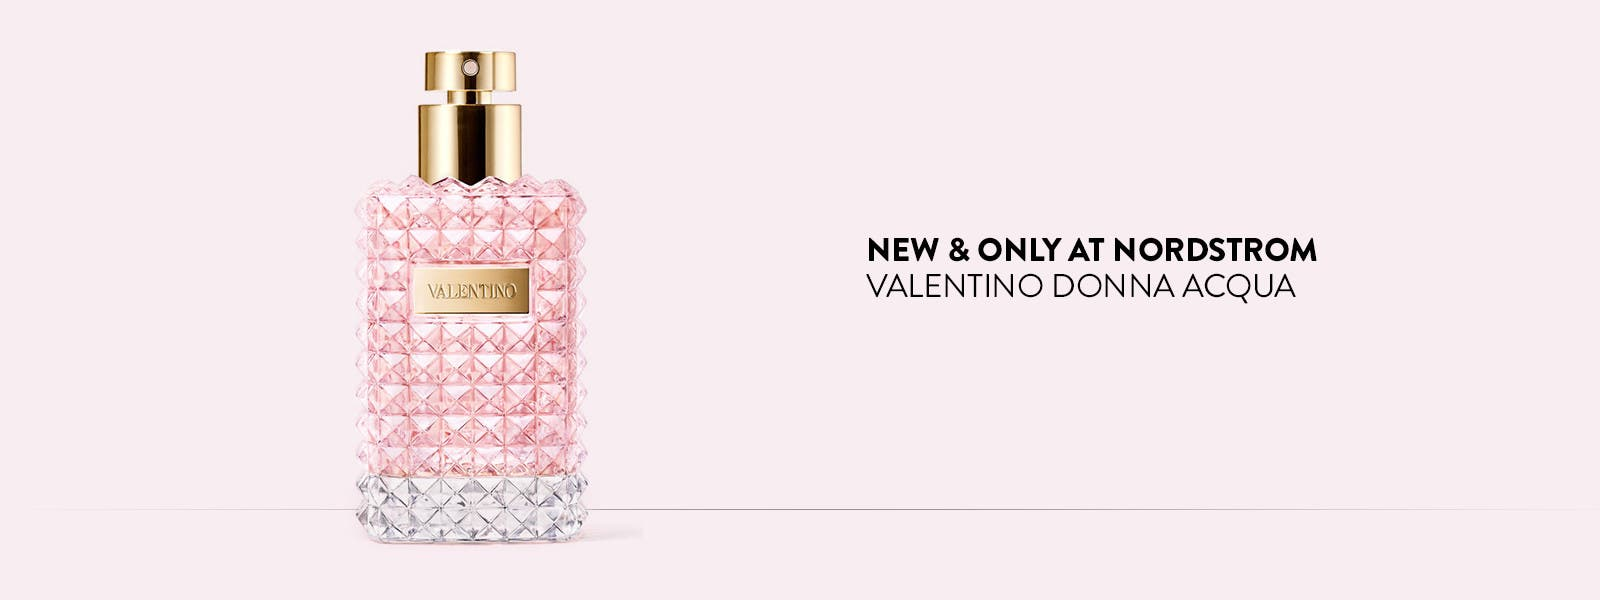 New and only at Nordstrom: Valentino Donna Acqua.